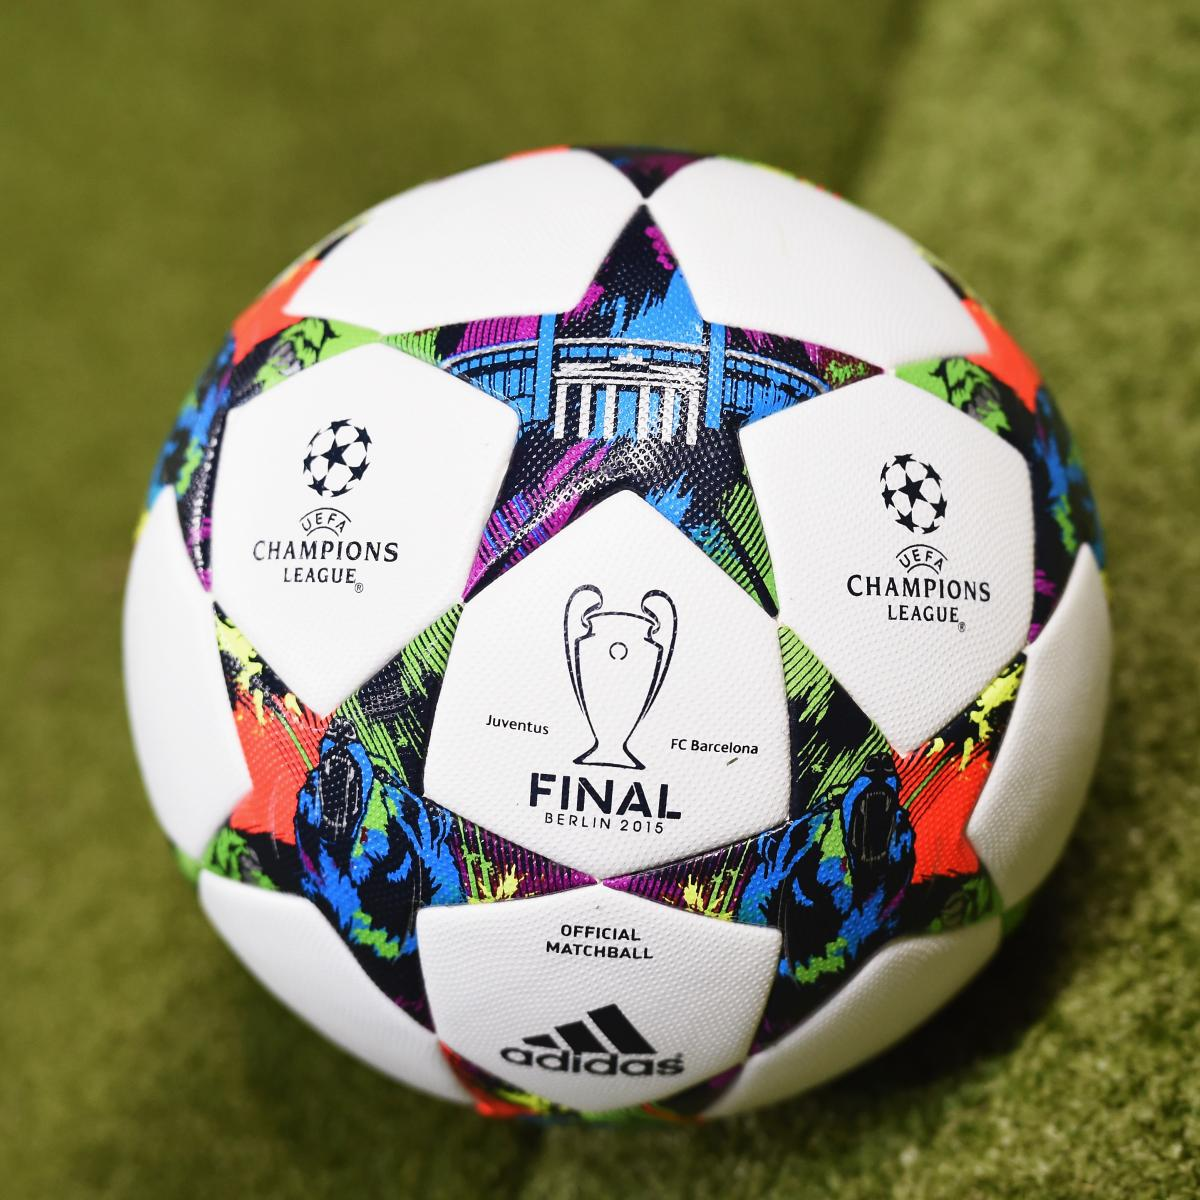 ranking the champions league final match balls over the last decade bleacher report latest news videos and highlights champions league final match balls